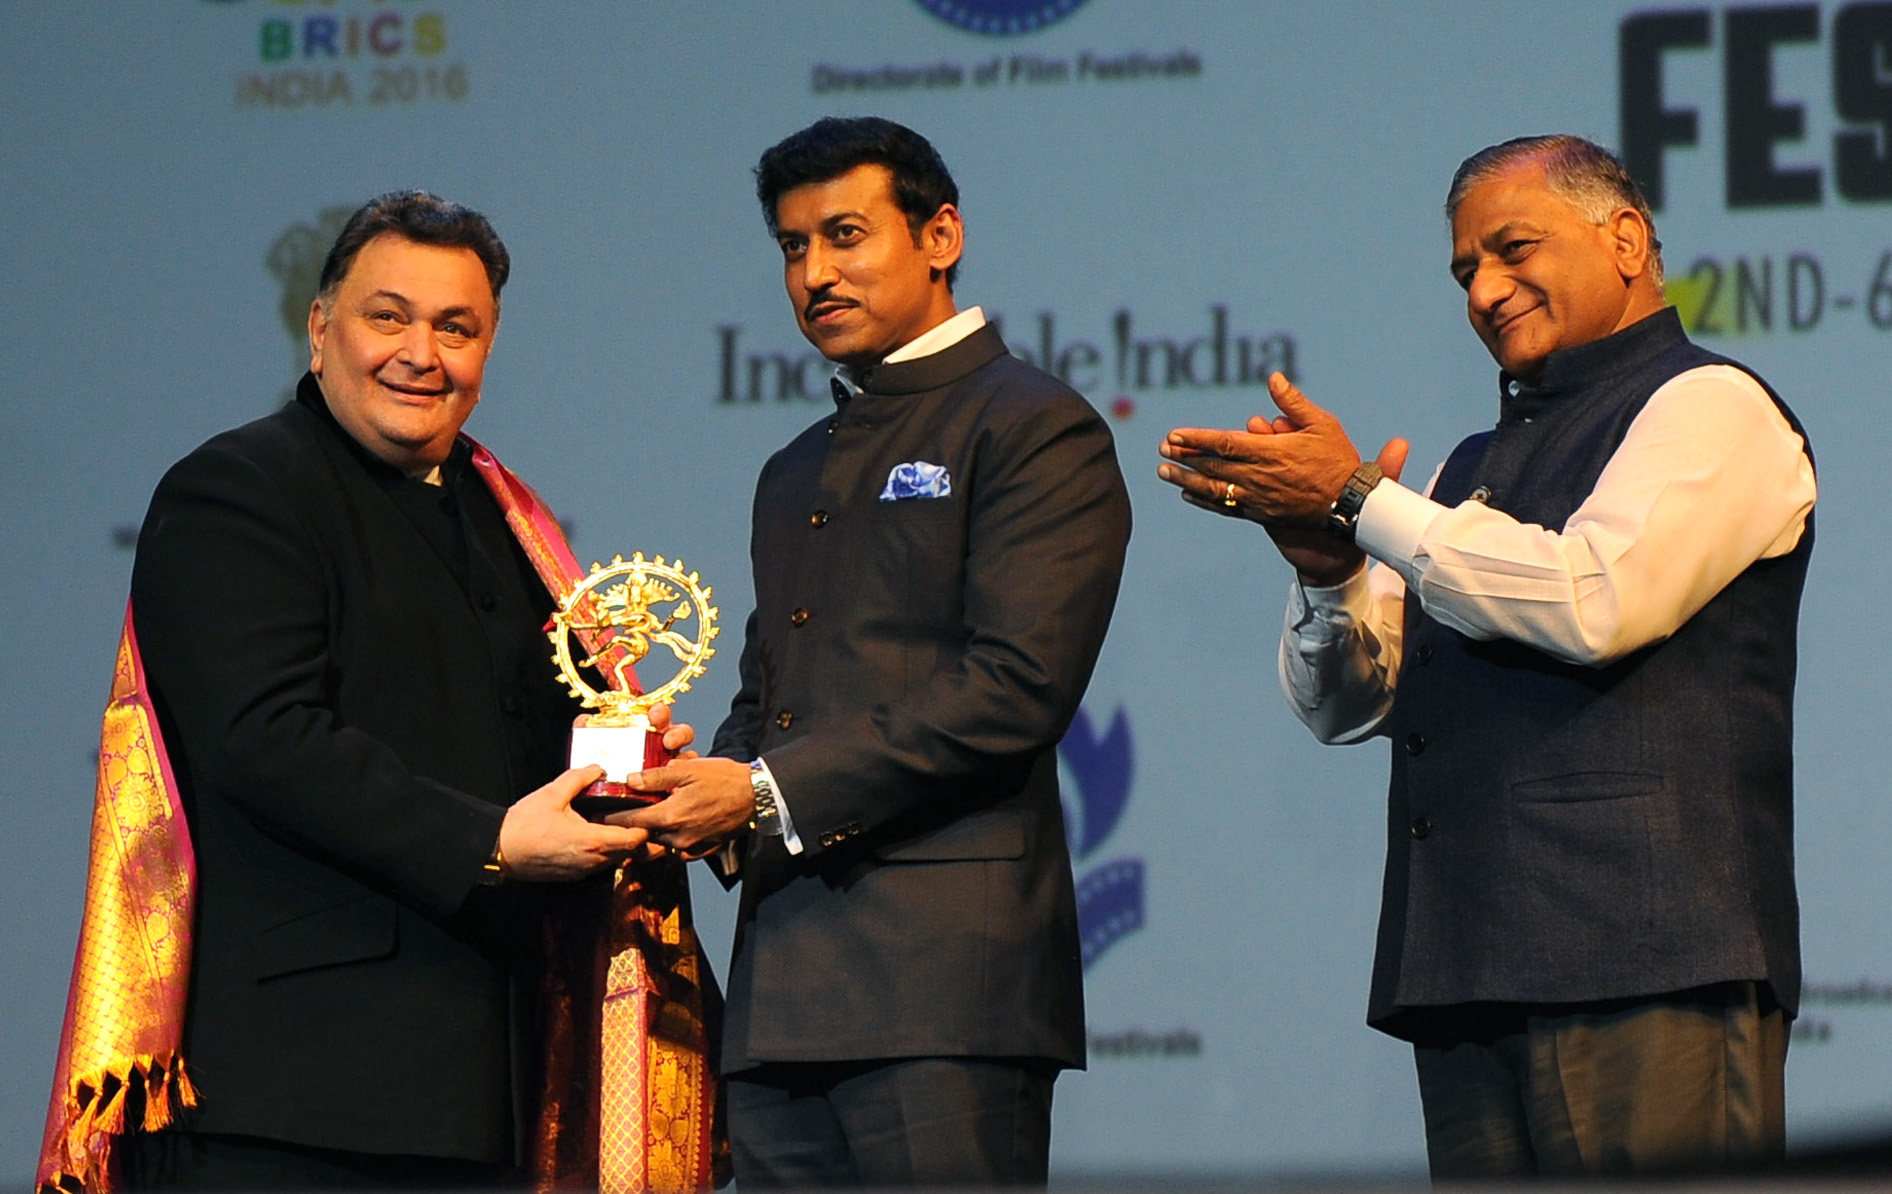 The_Minister_of_State_for_Information_&_Broadcasting,_Col._Rajyavardhan_Singh_Rathore_felicitating_the_Actor_Rishi_Kapoor,_at_the_inauguration_of_the_BRICS_Film_Festival,_in_New_Delhi.jpg